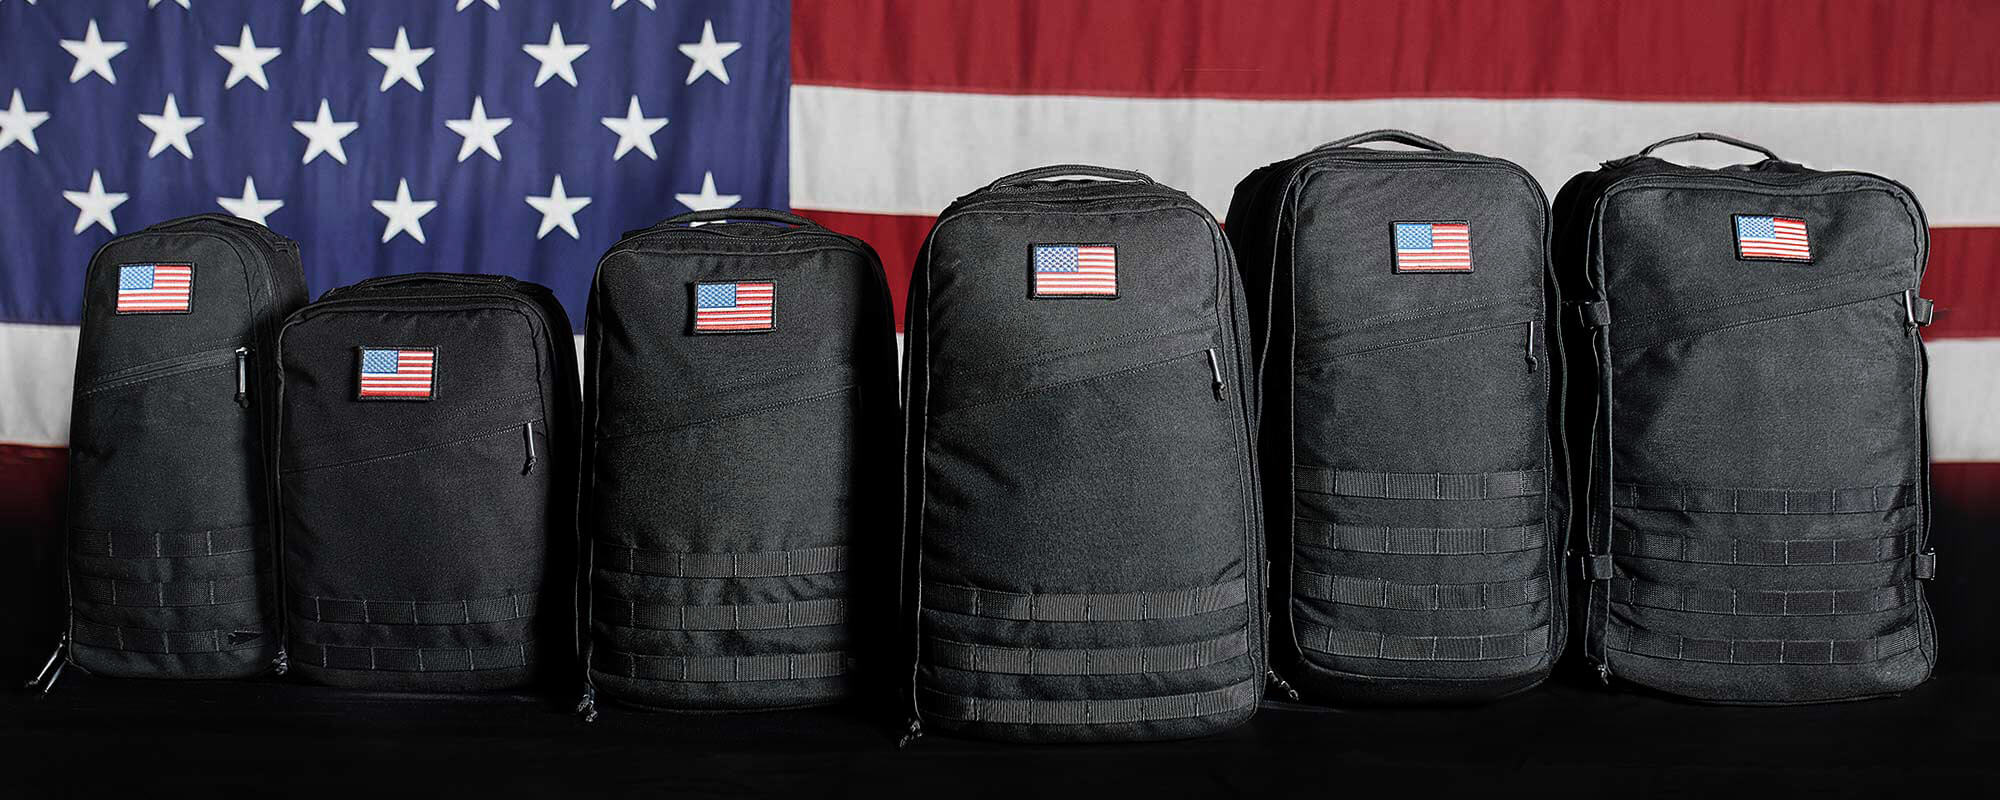 rucksacks in front of american flag